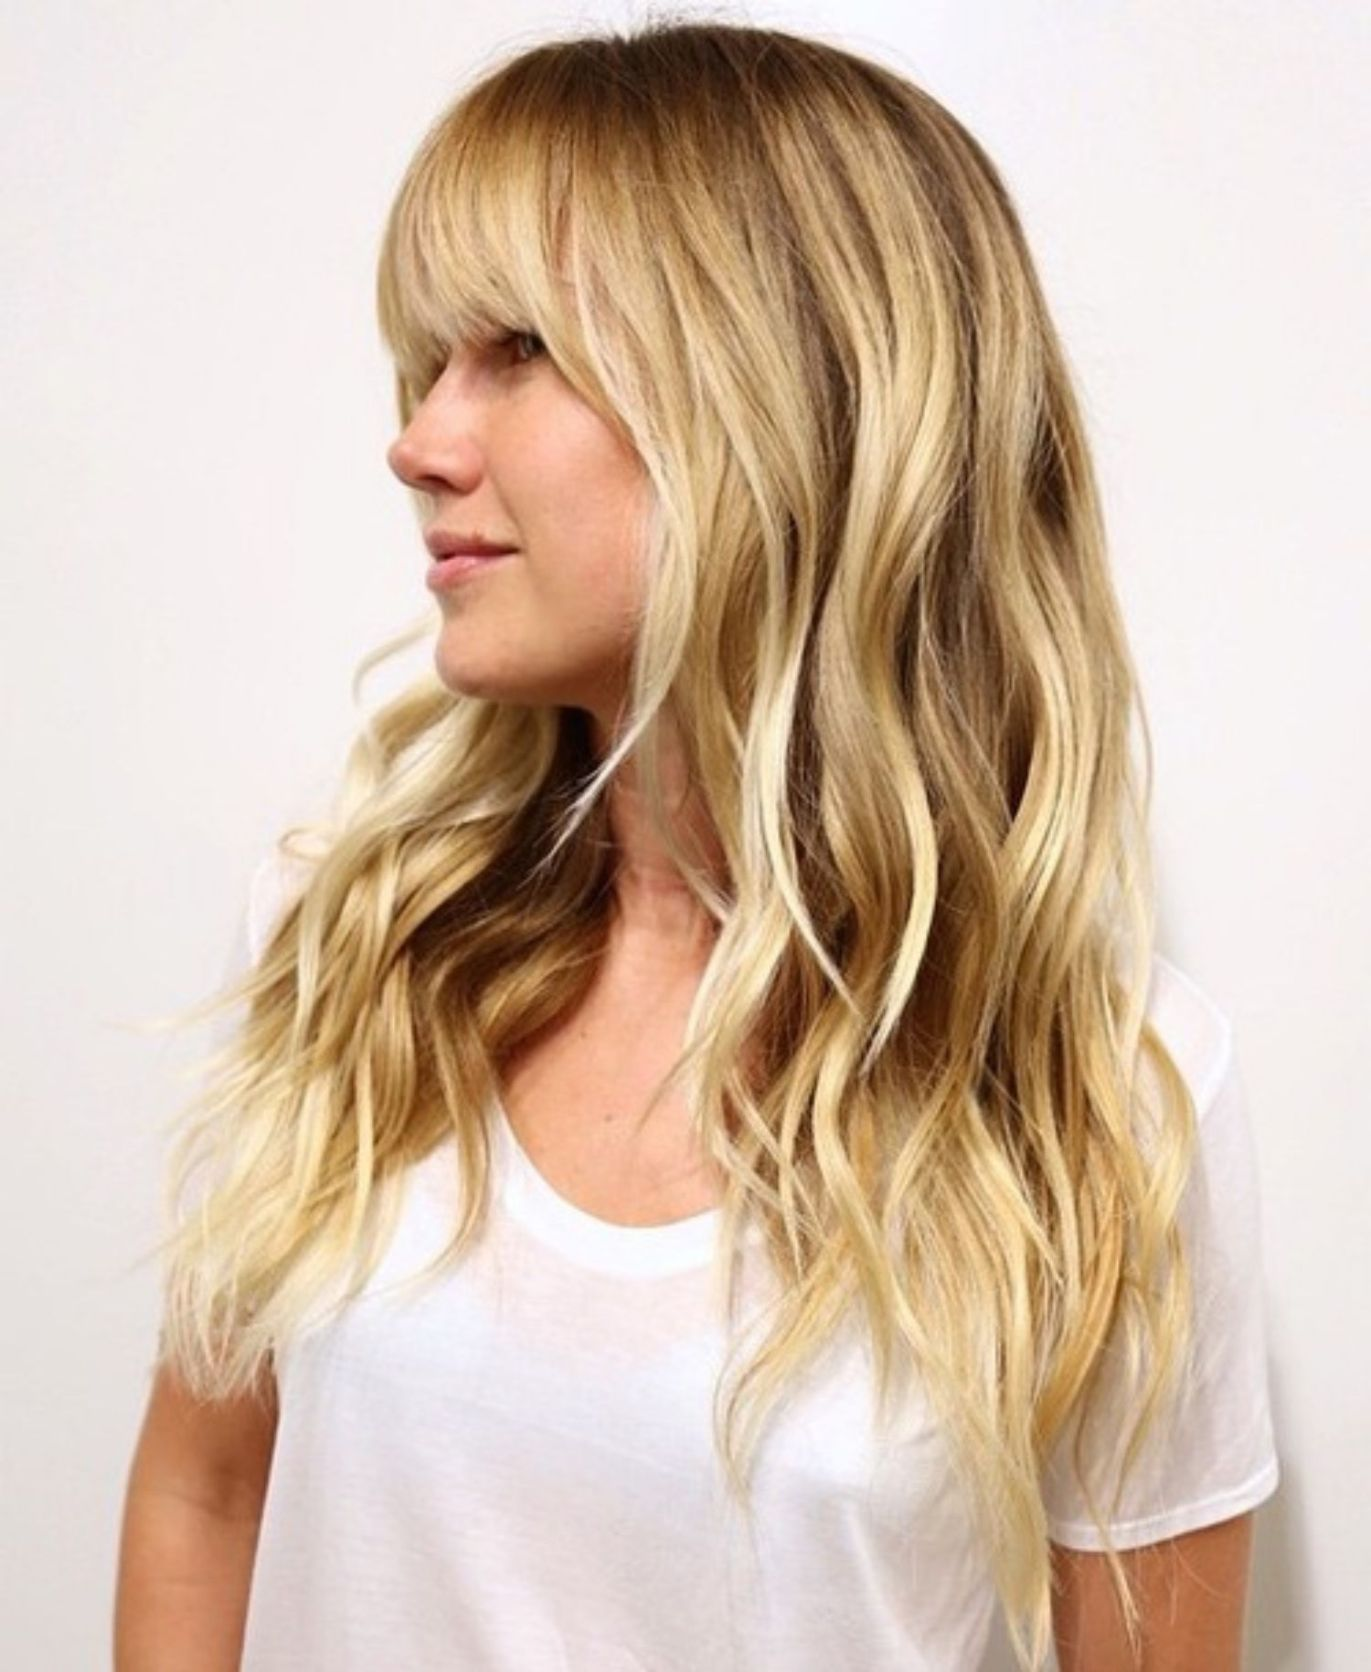 18 Freshest Long Layered Hairstyles with Bangs picture